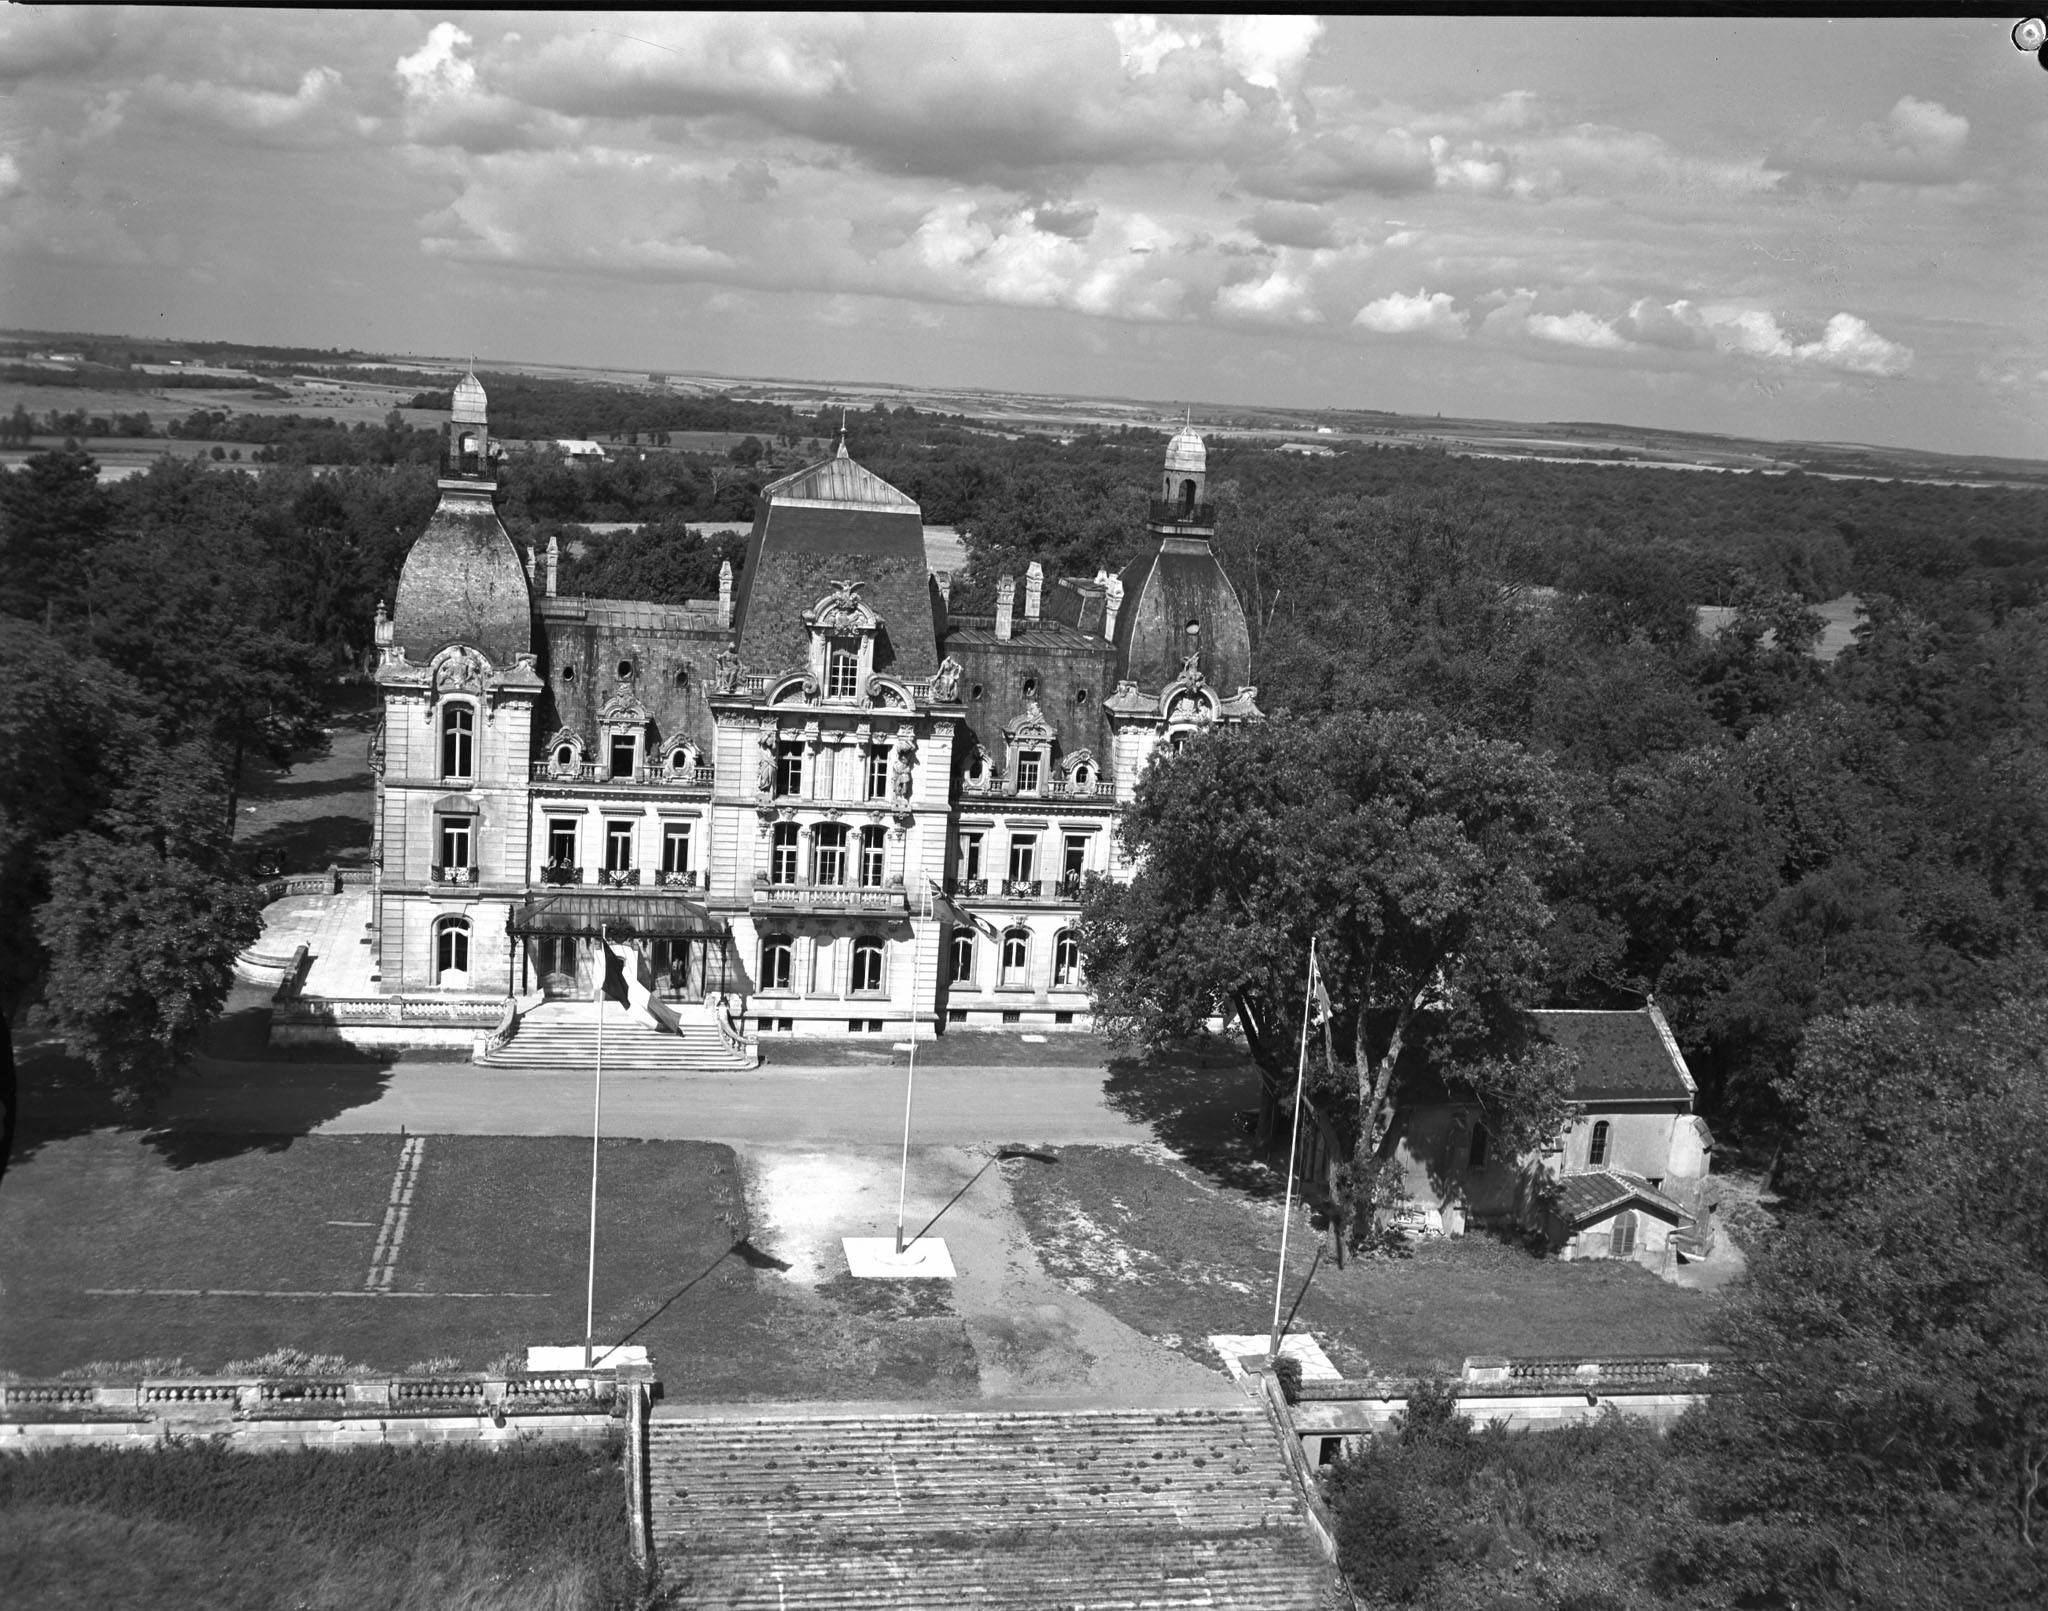 An aerial view of Château de Mercy in Metz, France, where 1 Air Division was headquartered. PHOTO: DND Archives, PL-134327